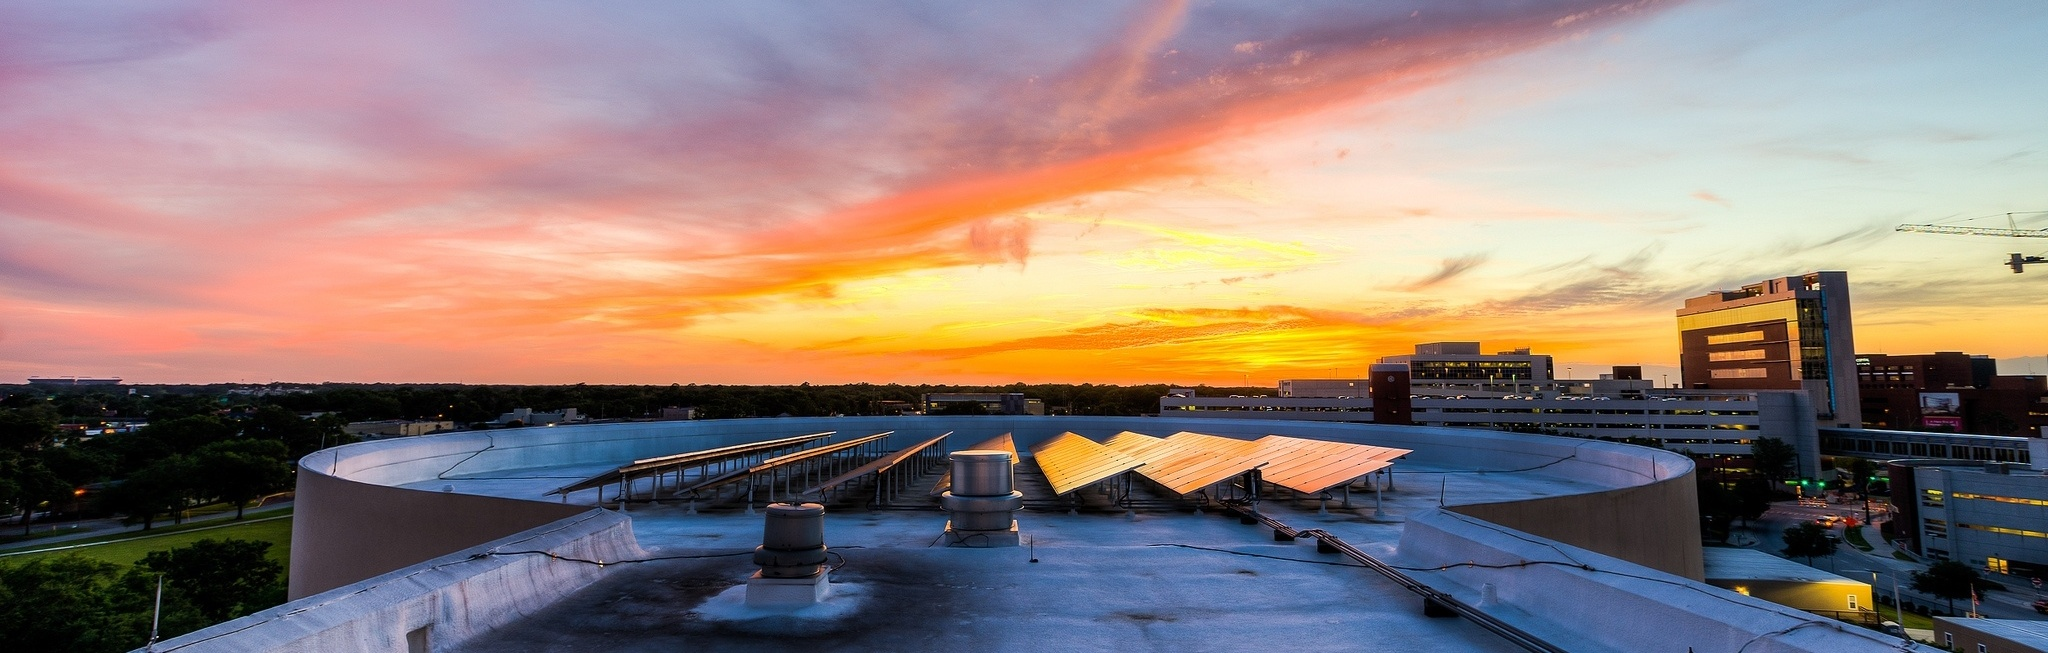 Sunset_from_the_Orlando_Science_Center_by_Jeff_Krause-709383-edited